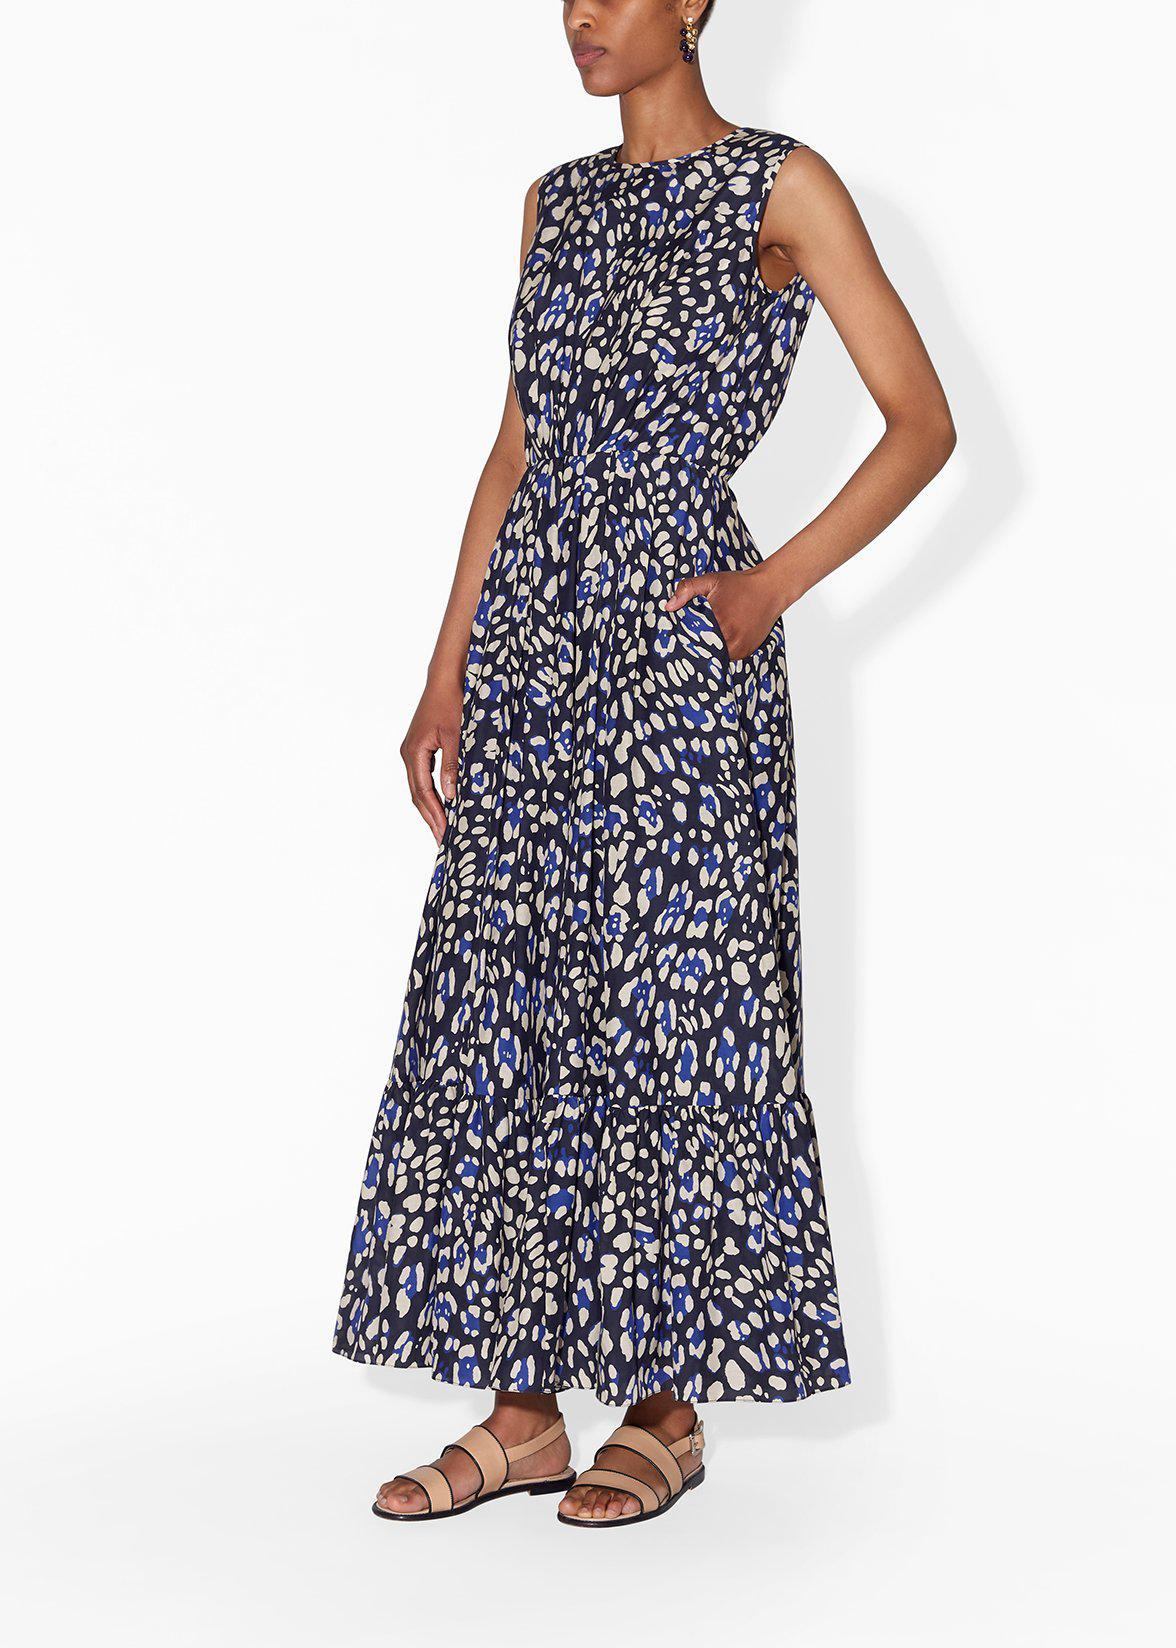 GATHERED WAIST DRESS IN PRINTED COTTON VOILE